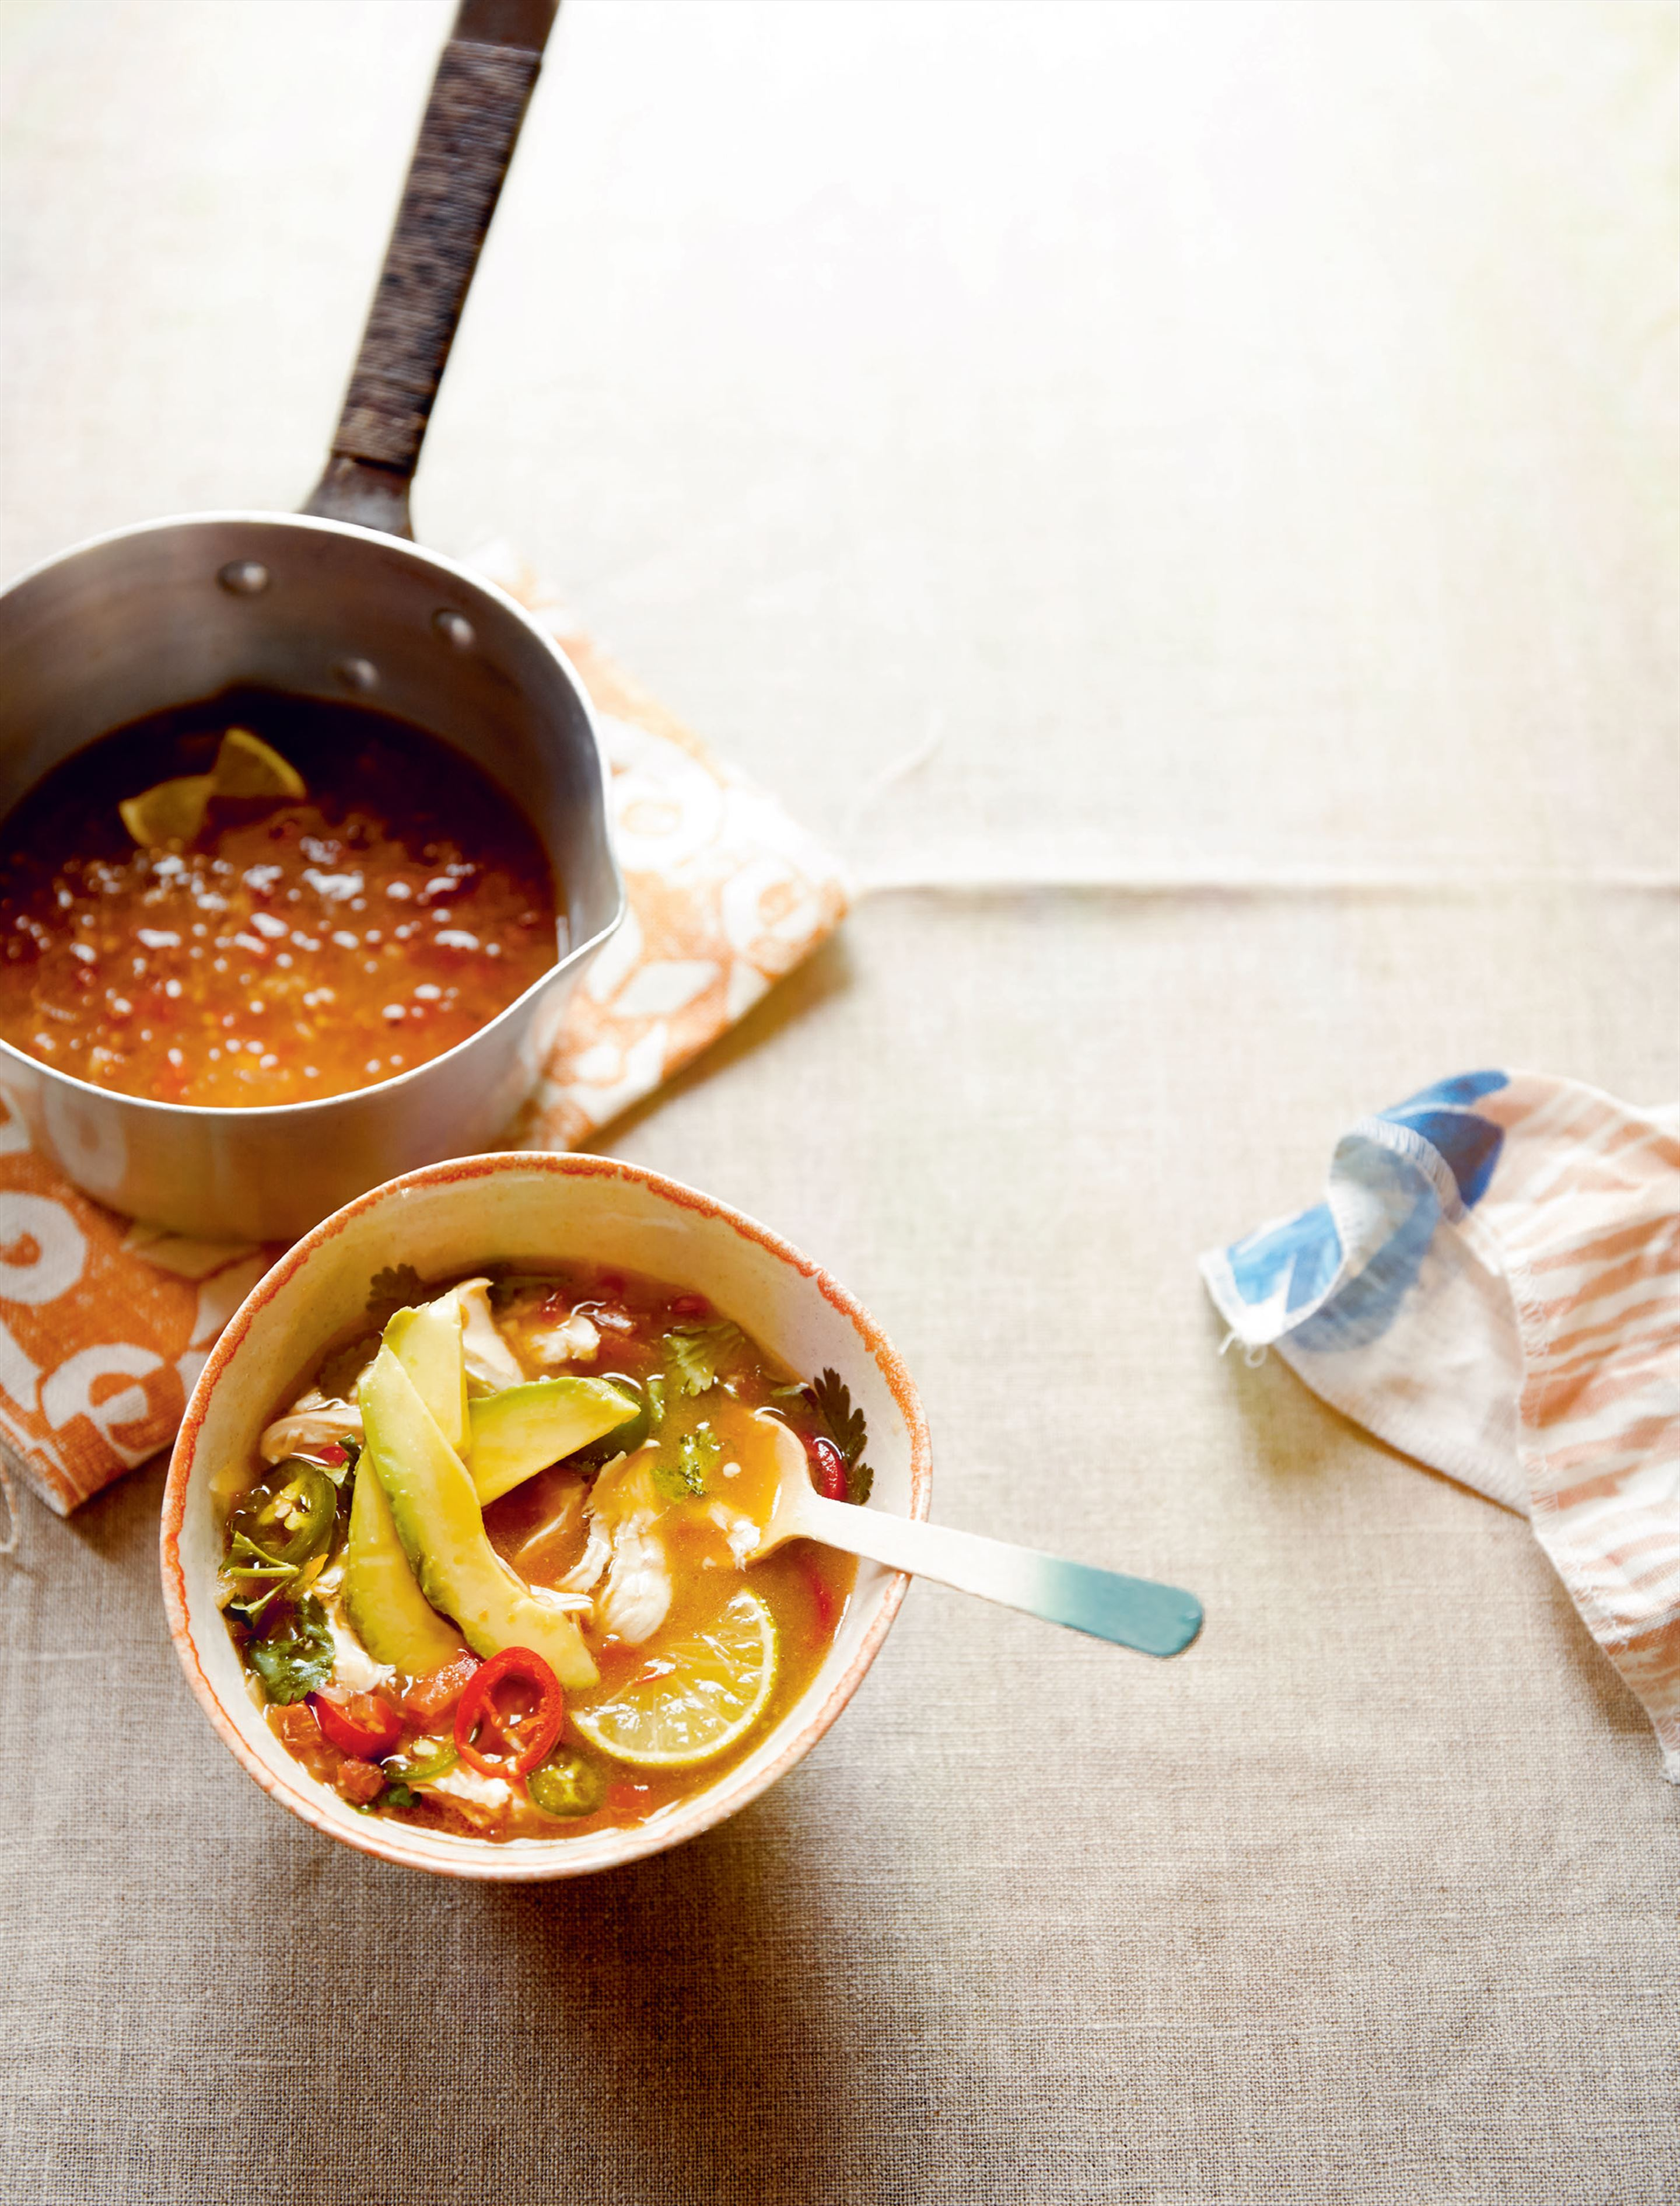 Spicy chicken broth